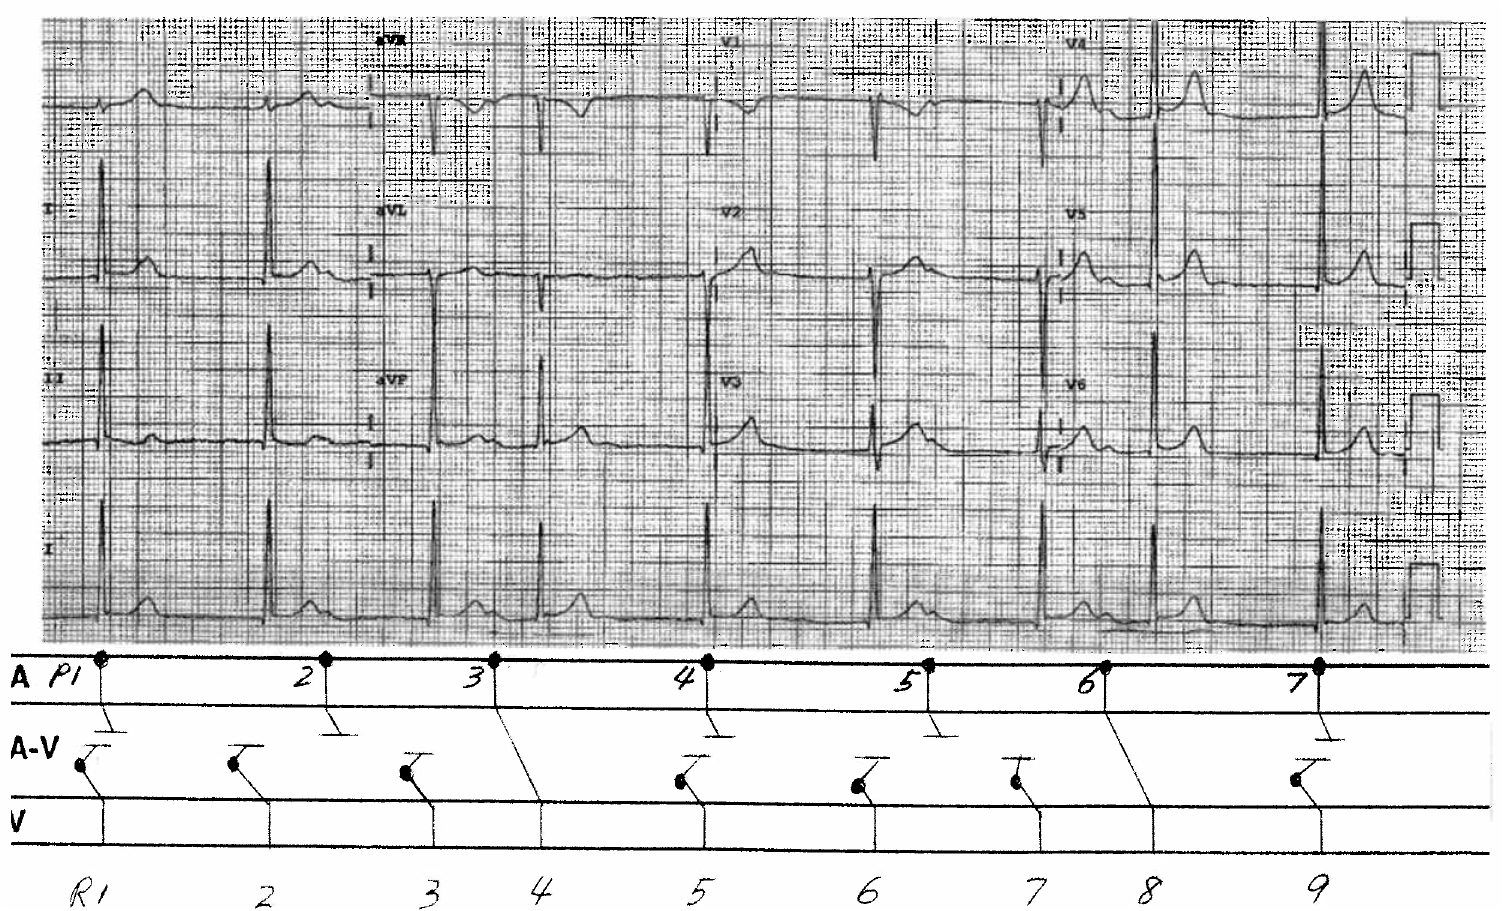 Dr smiths ecg blog a mystery rhythm explained by k wangs the primary problem is irregular sinus bradycardia sinus node dysfunction with junctional escape beats r1 2 3 5 6 7and 9 which occur with ccuart Gallery